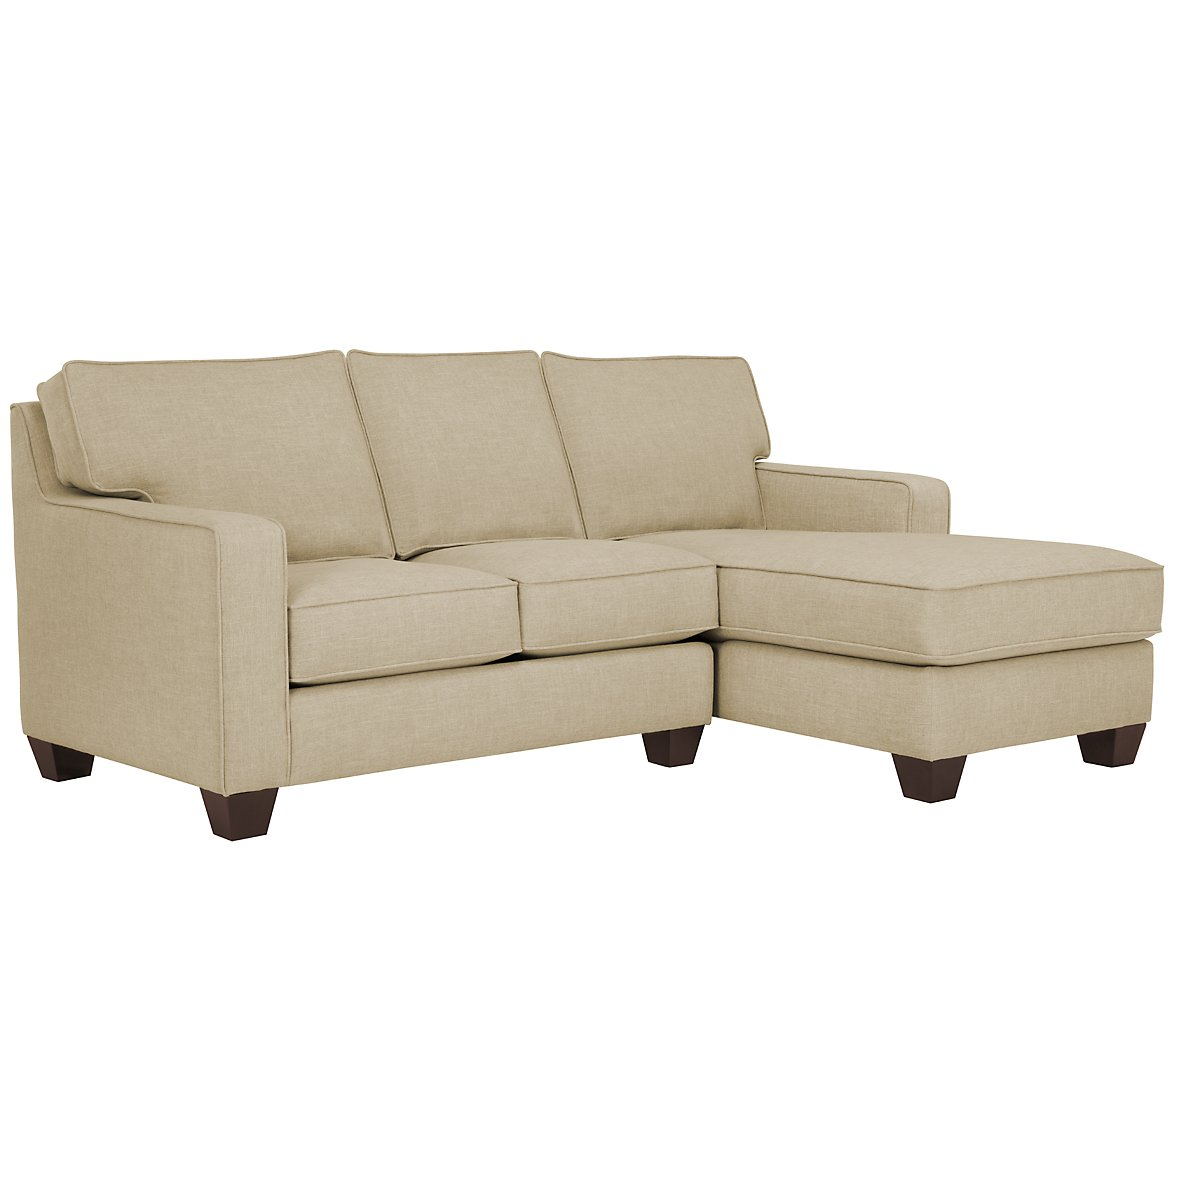 City furniture york beige fabric small right chaise sectional for Chaise york